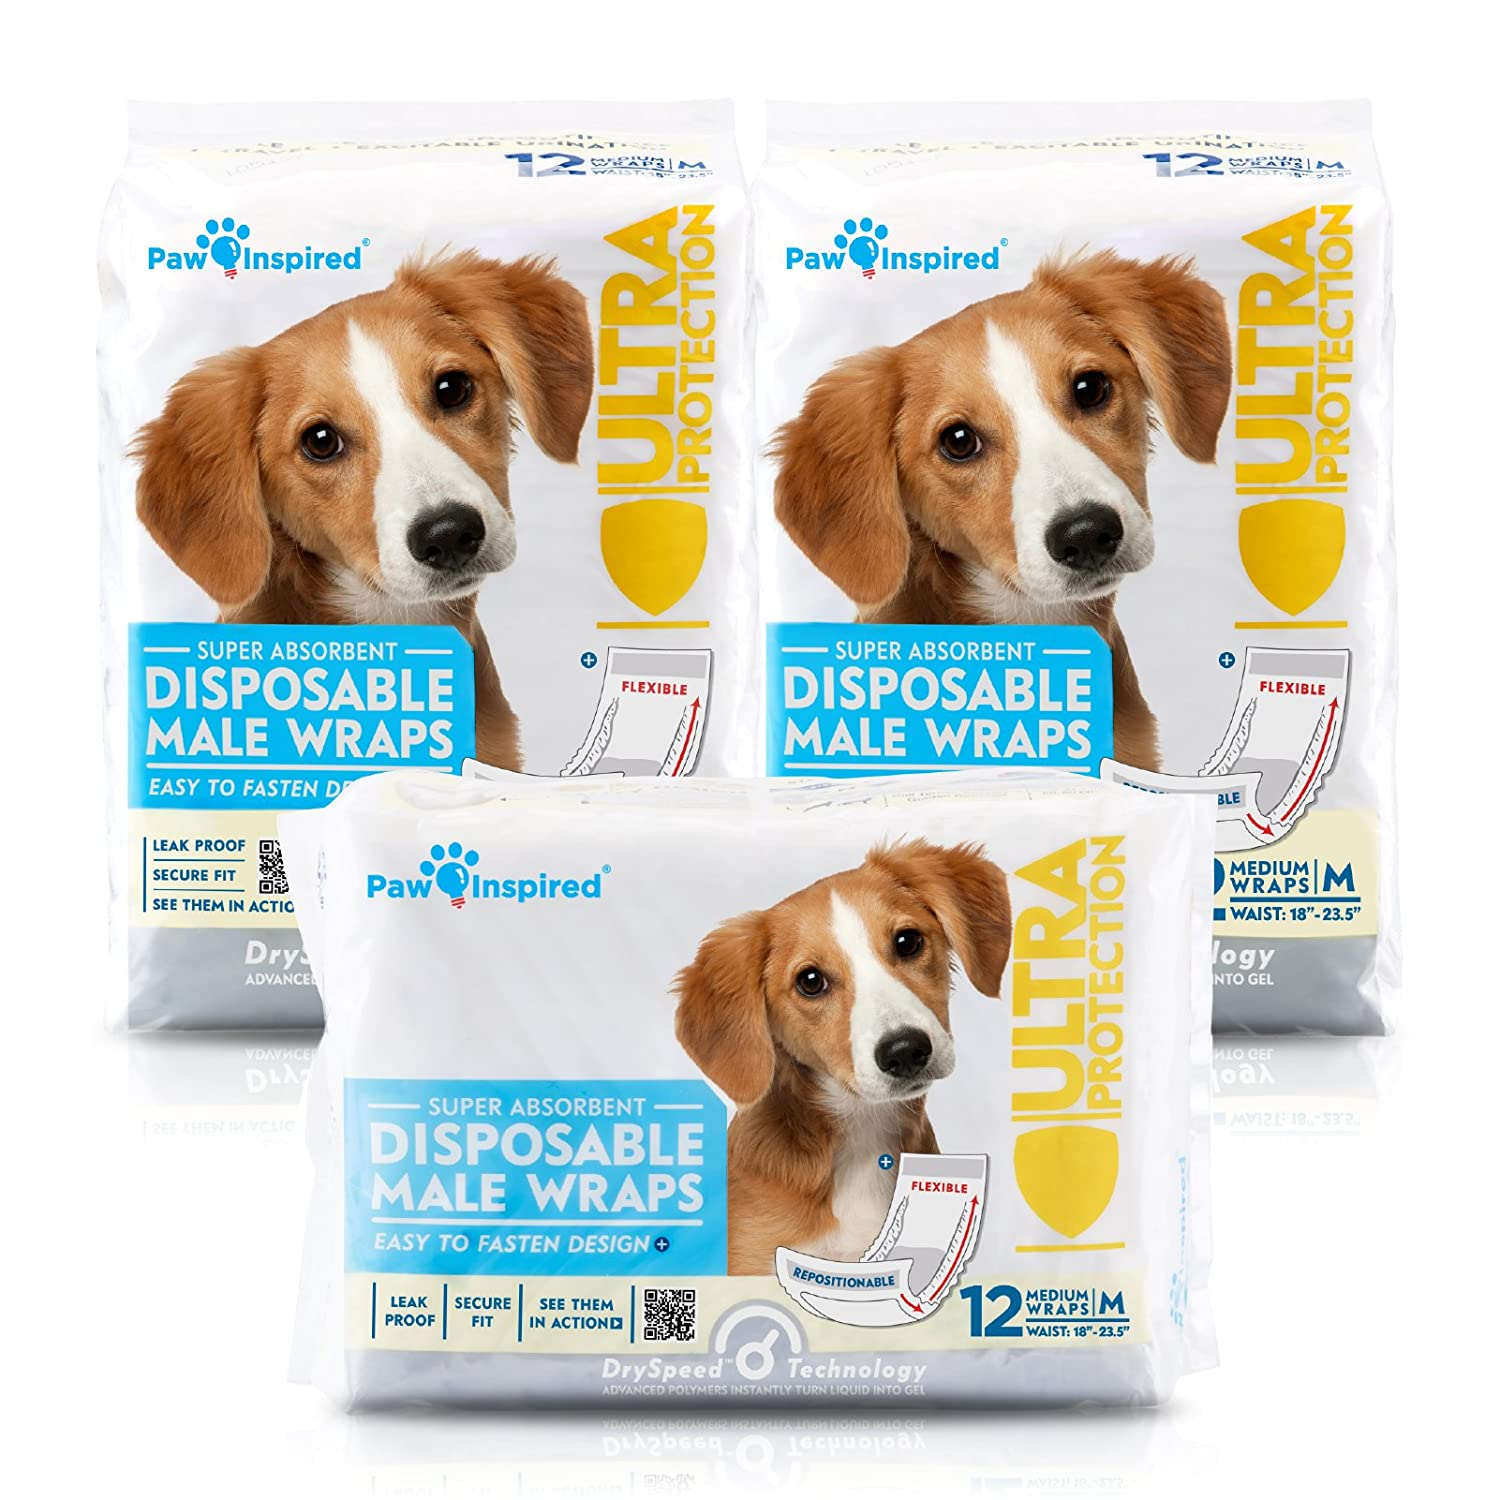 Paw Inspired 36ct Ultra Protection Disposable Male Wraps (Belly Bands),